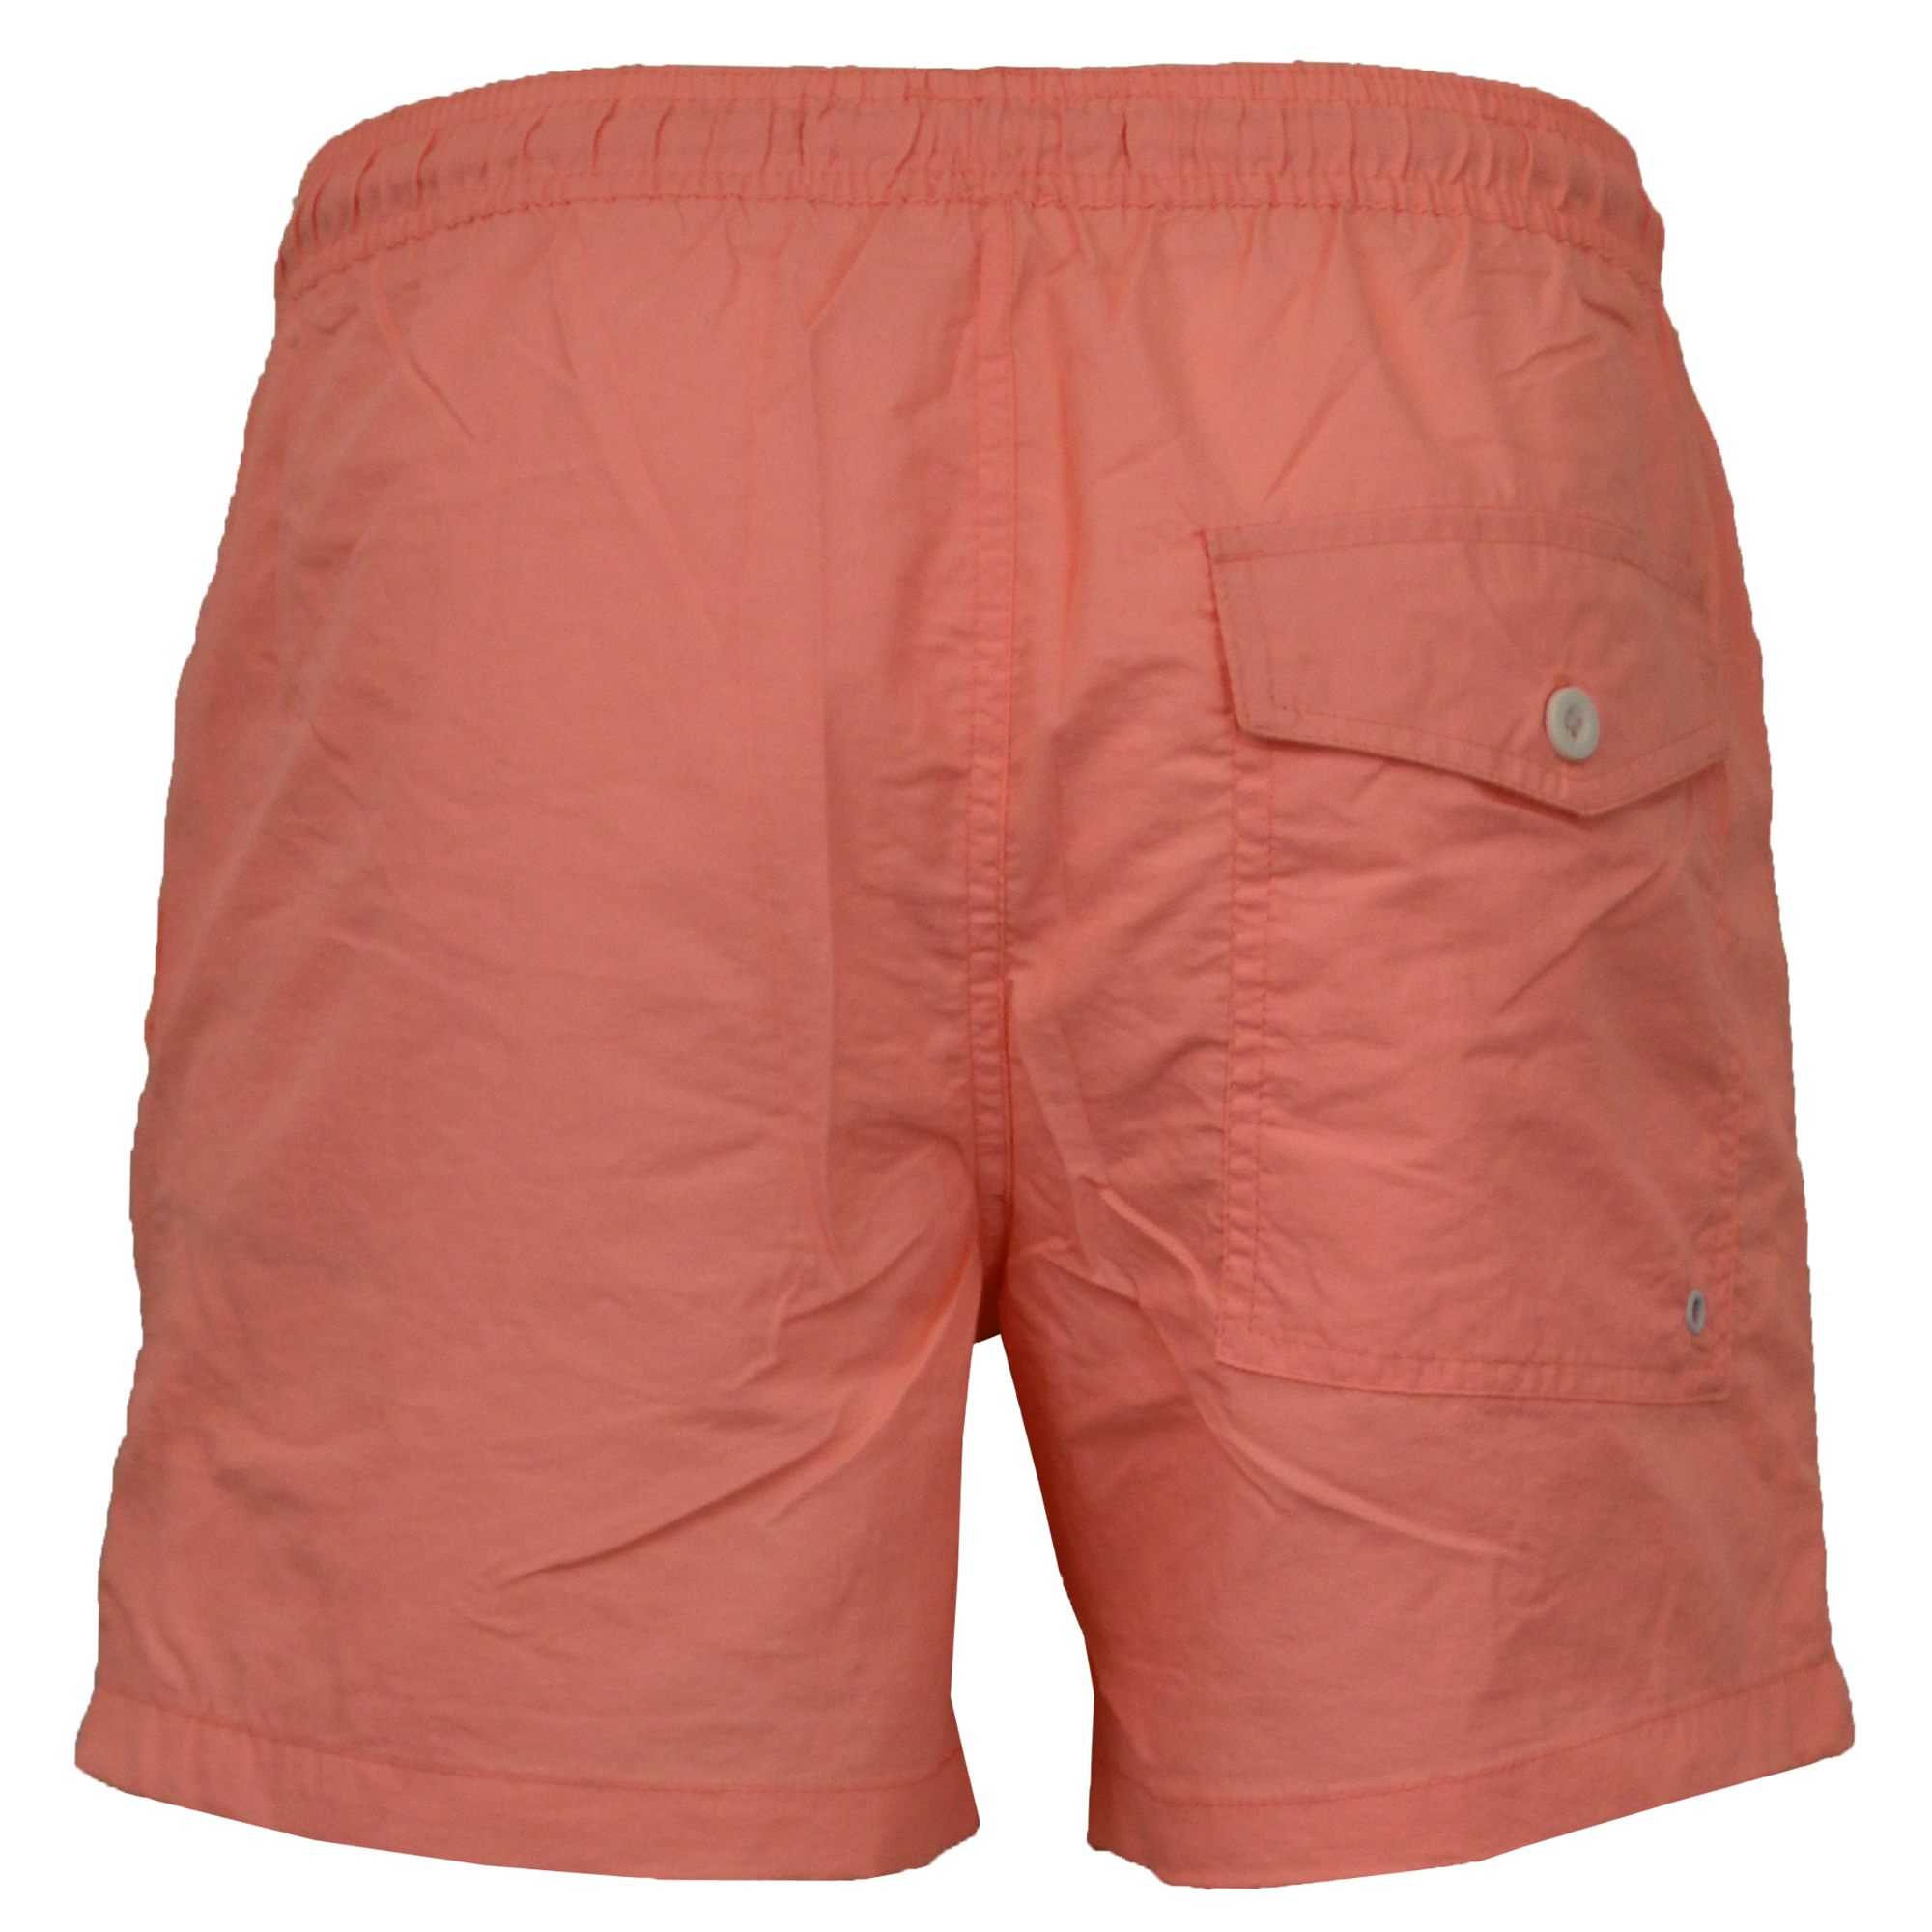 Mens-Swim-Board-Shorts-By-Brave-Soul-Mesh-Lined-New thumbnail 17